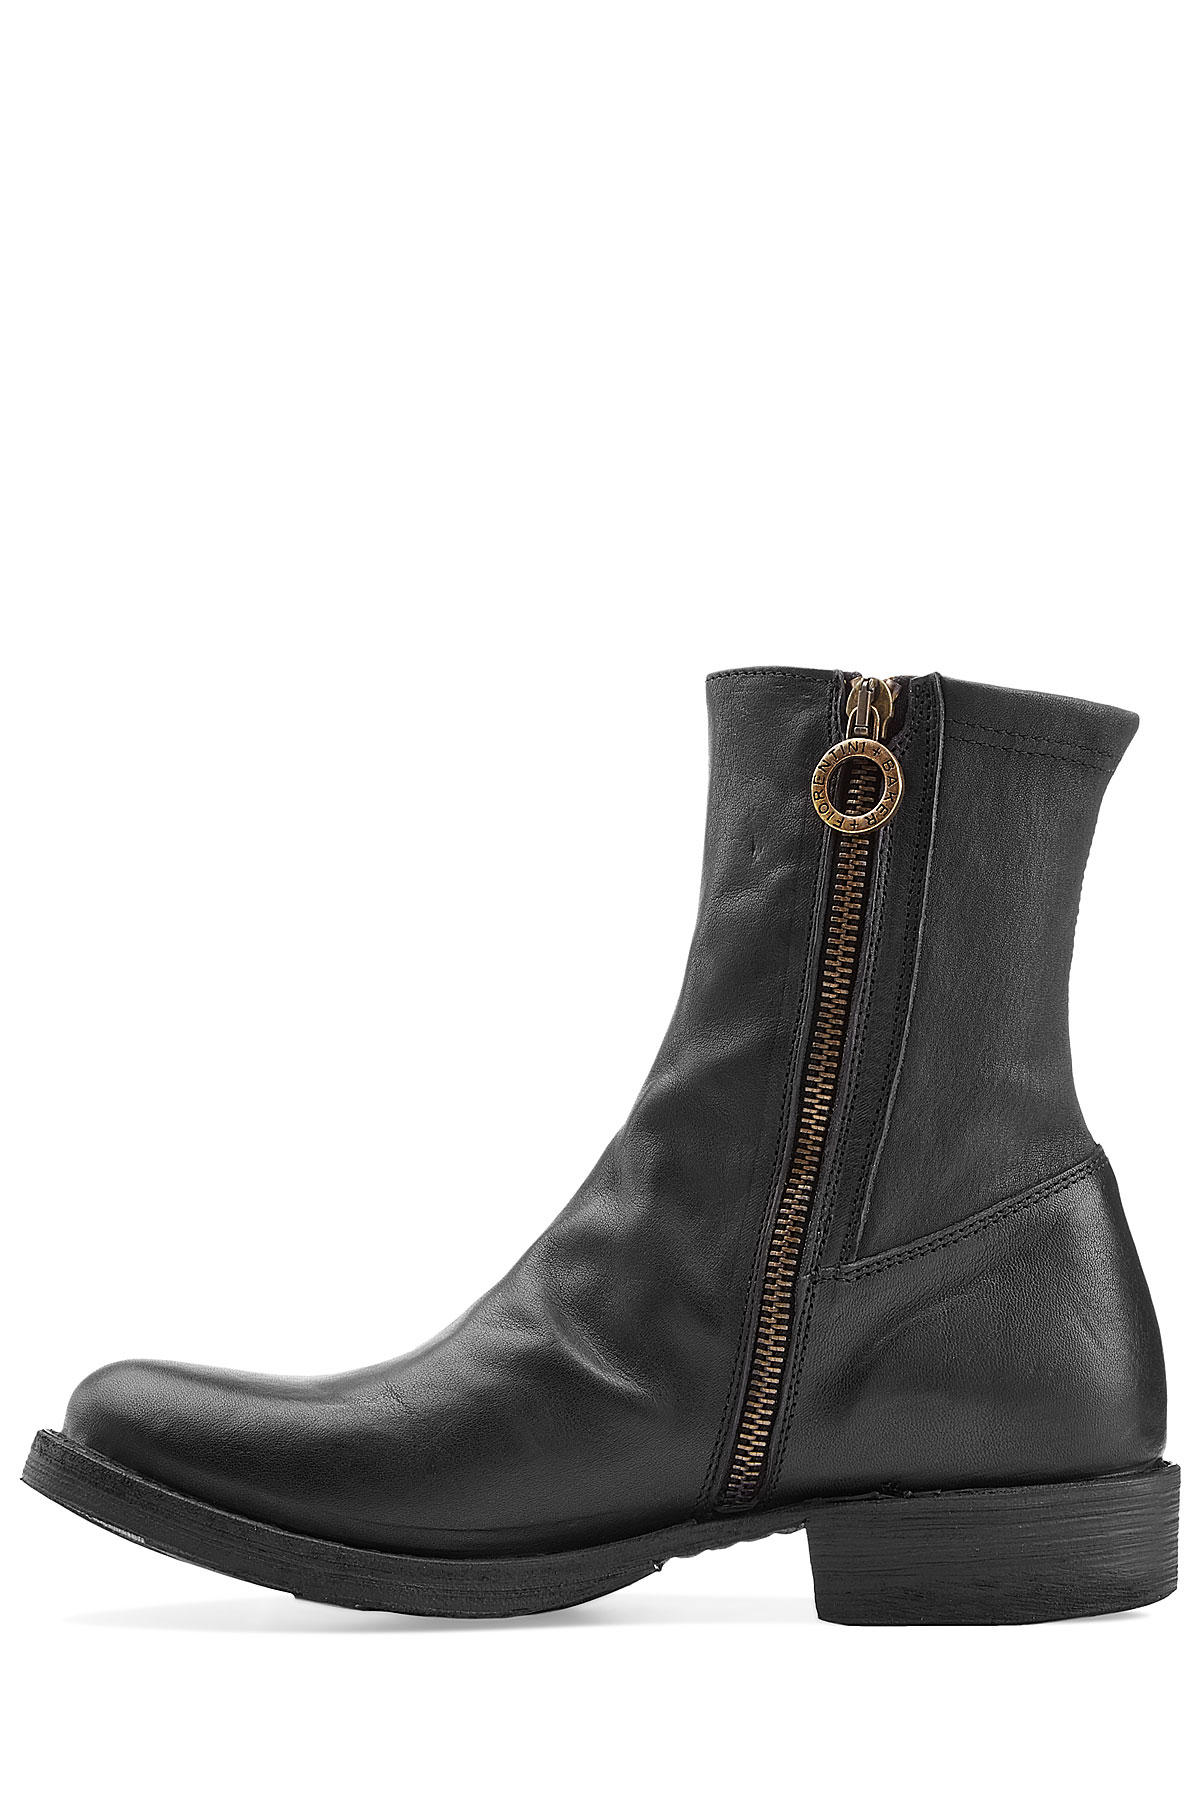 fiorentini baker eternity ebe leather ankle boots black in black lyst. Black Bedroom Furniture Sets. Home Design Ideas